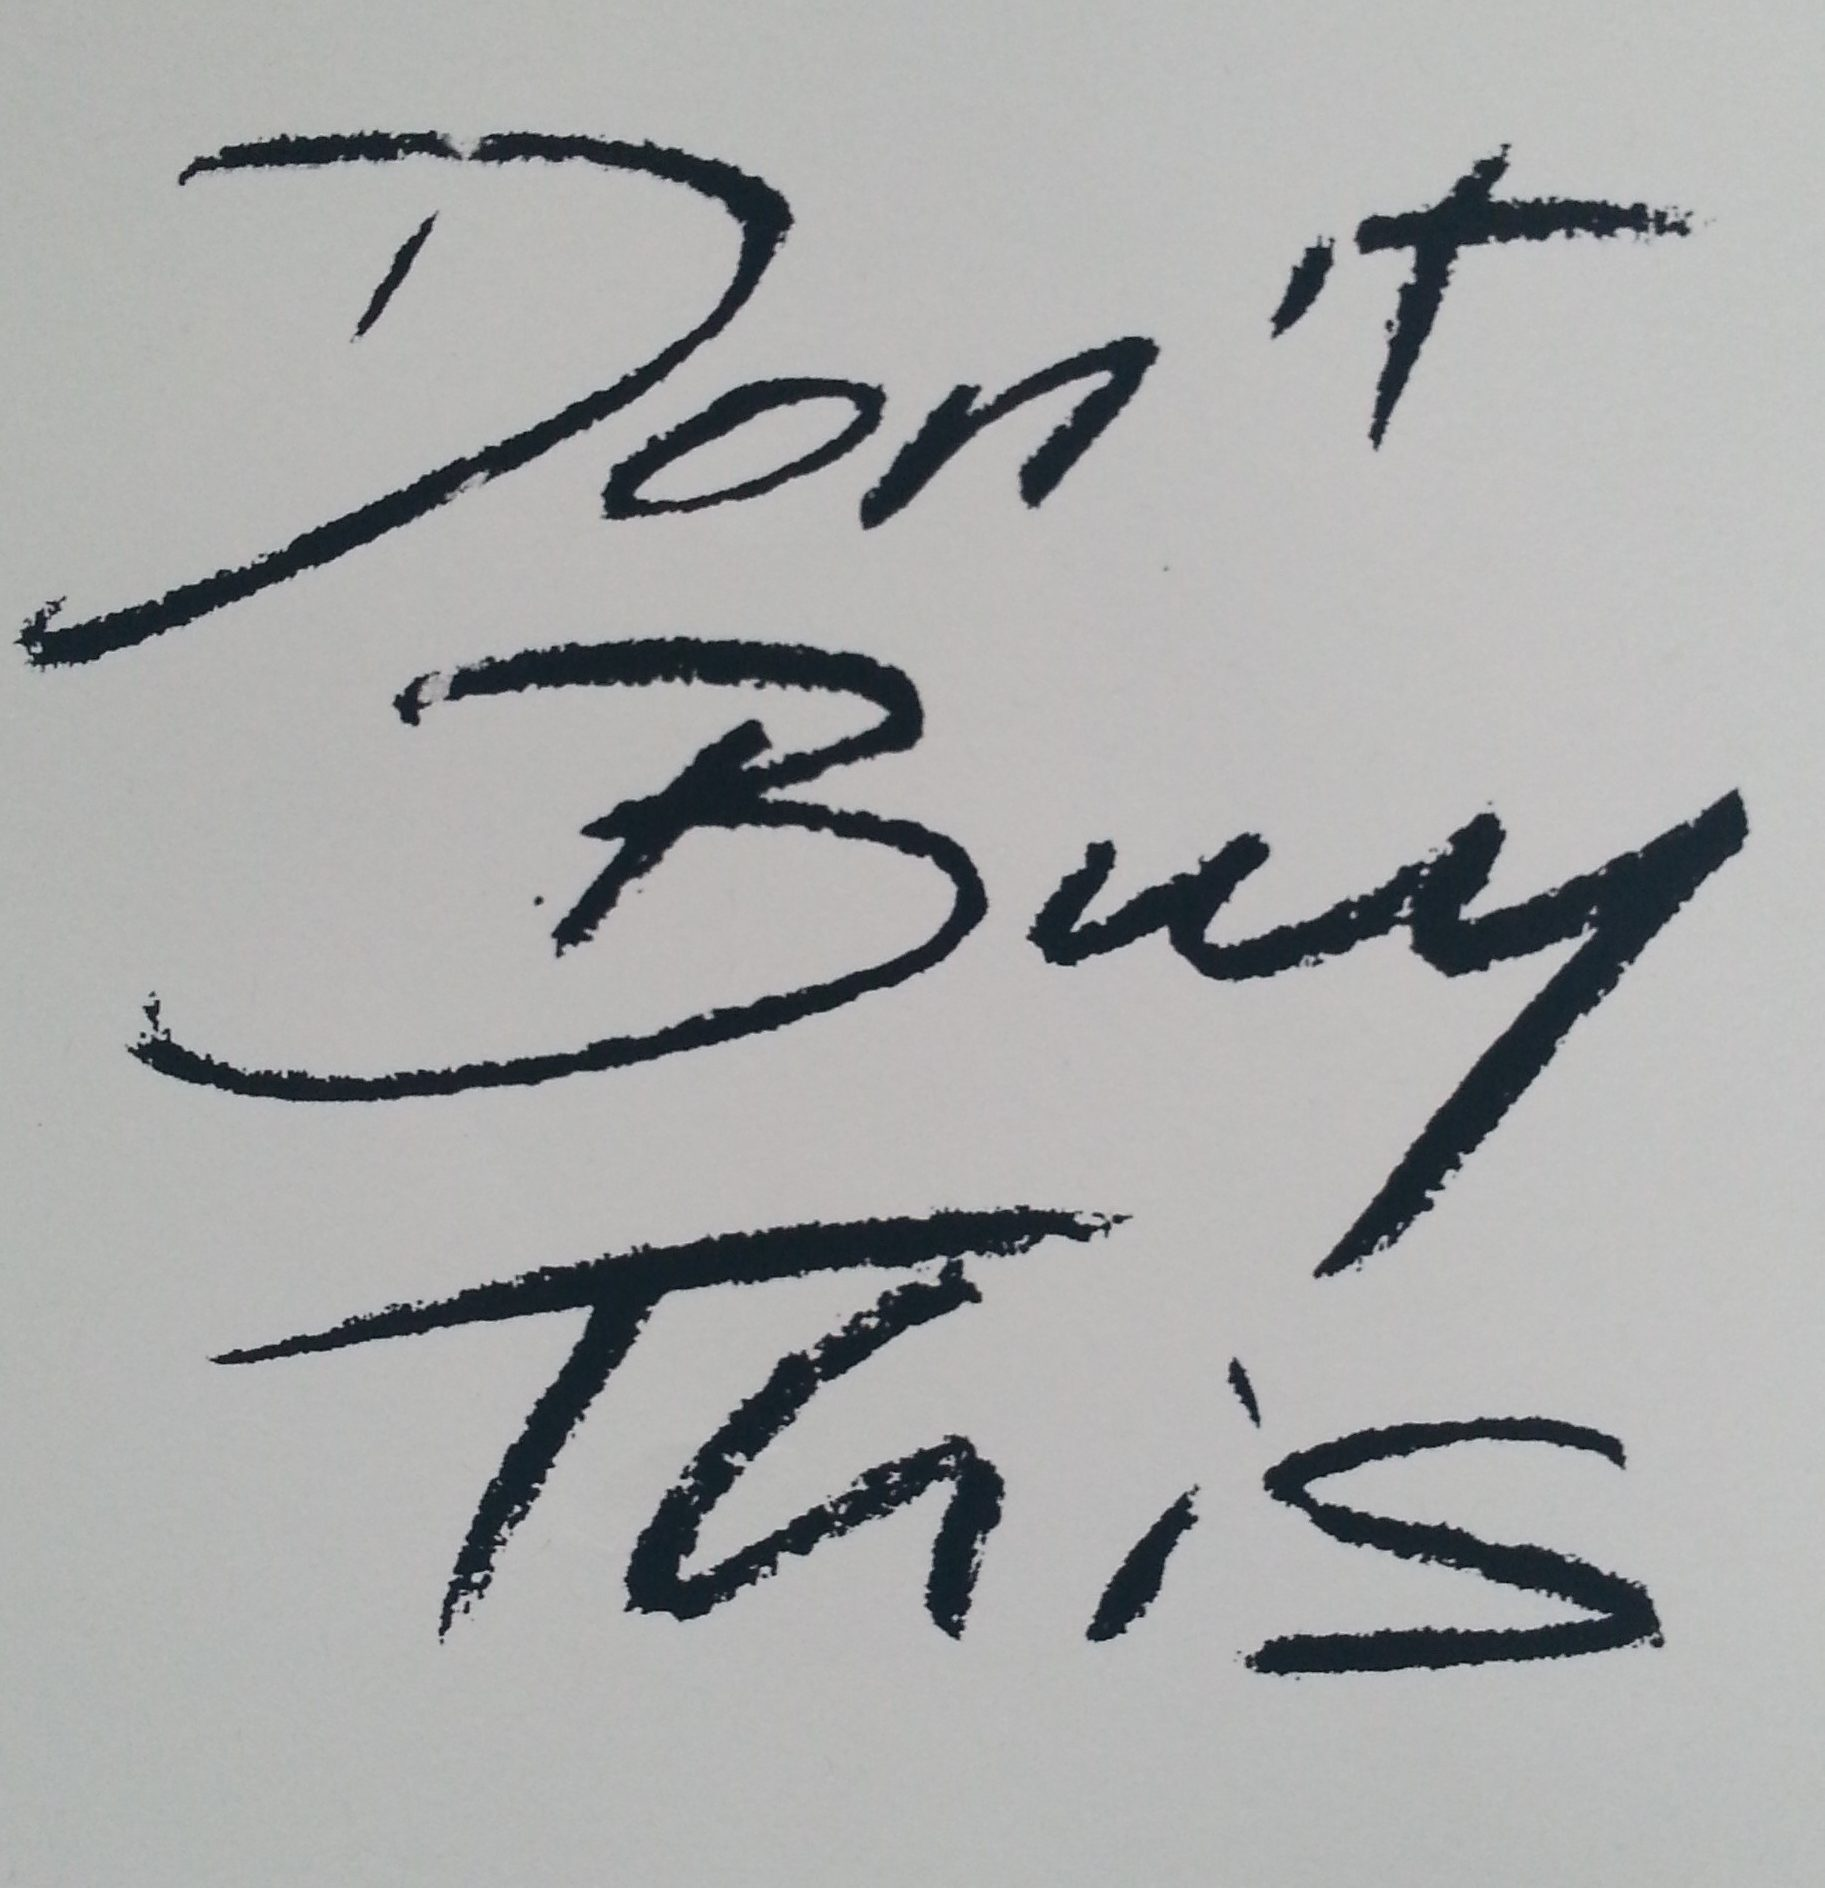 Don't Buy This, screen print on paper by Lee Devonish, 2016